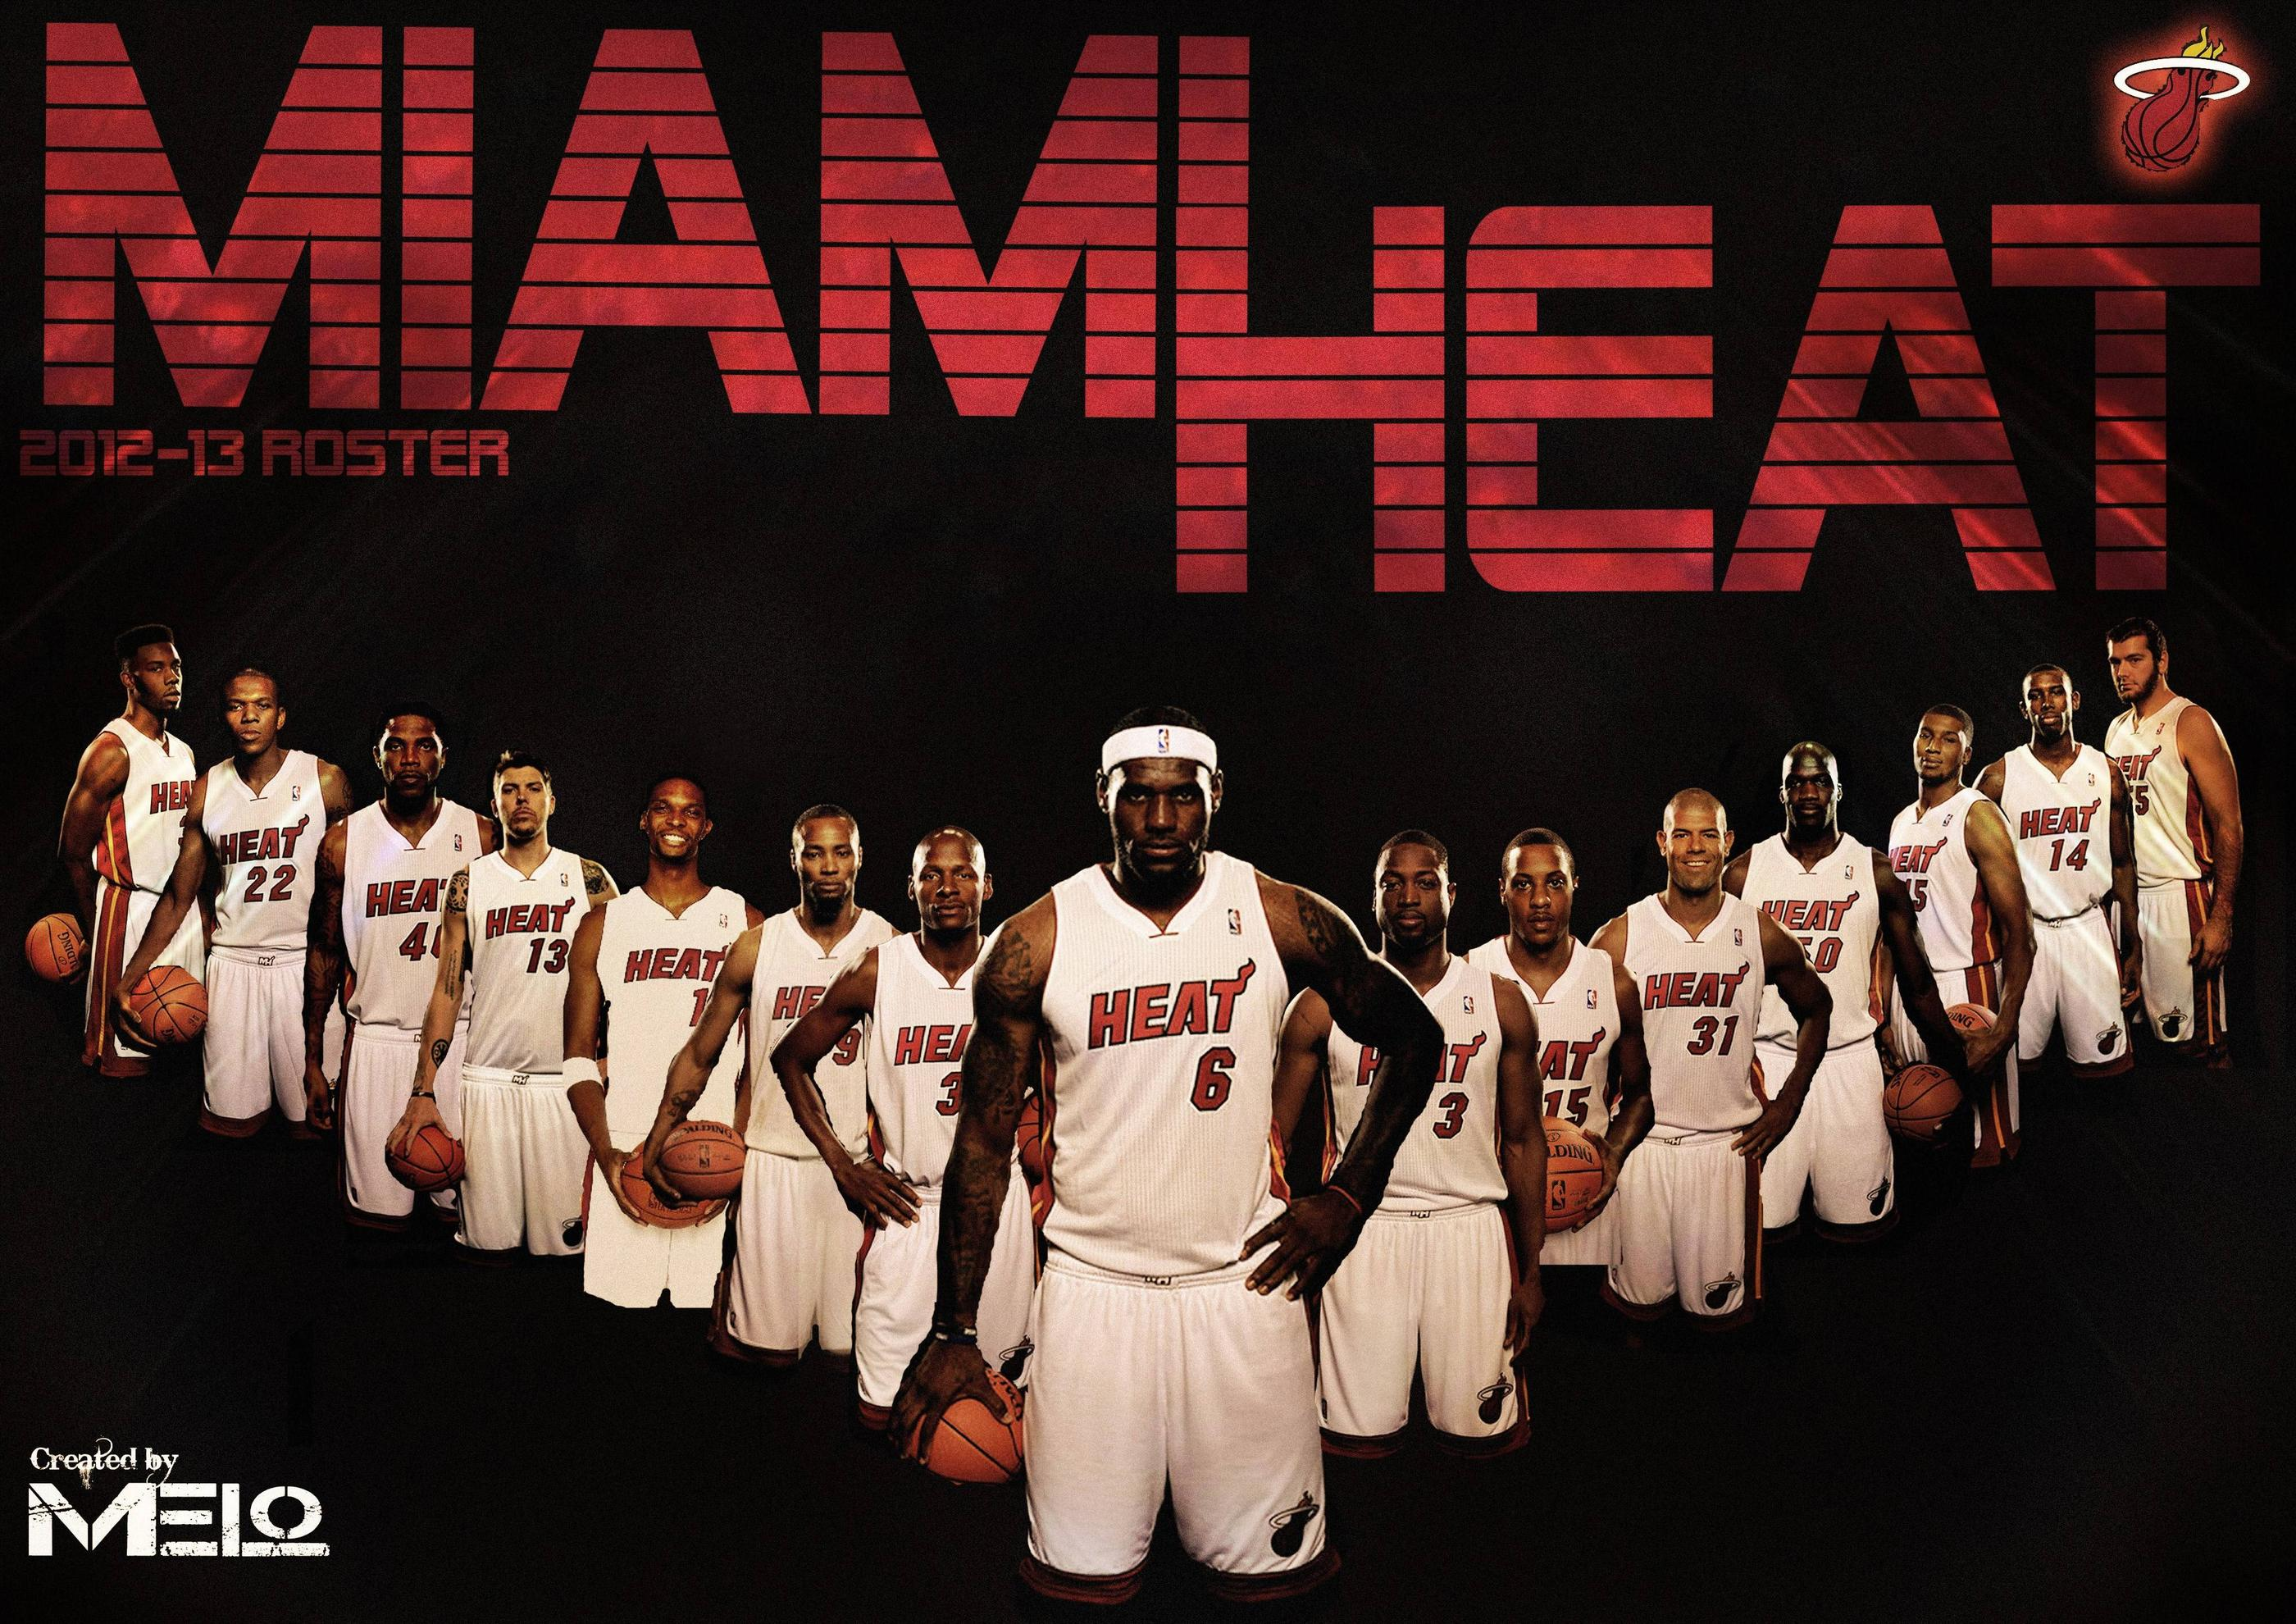 Miami Heat Wallpapers HD 2015 2800x1980